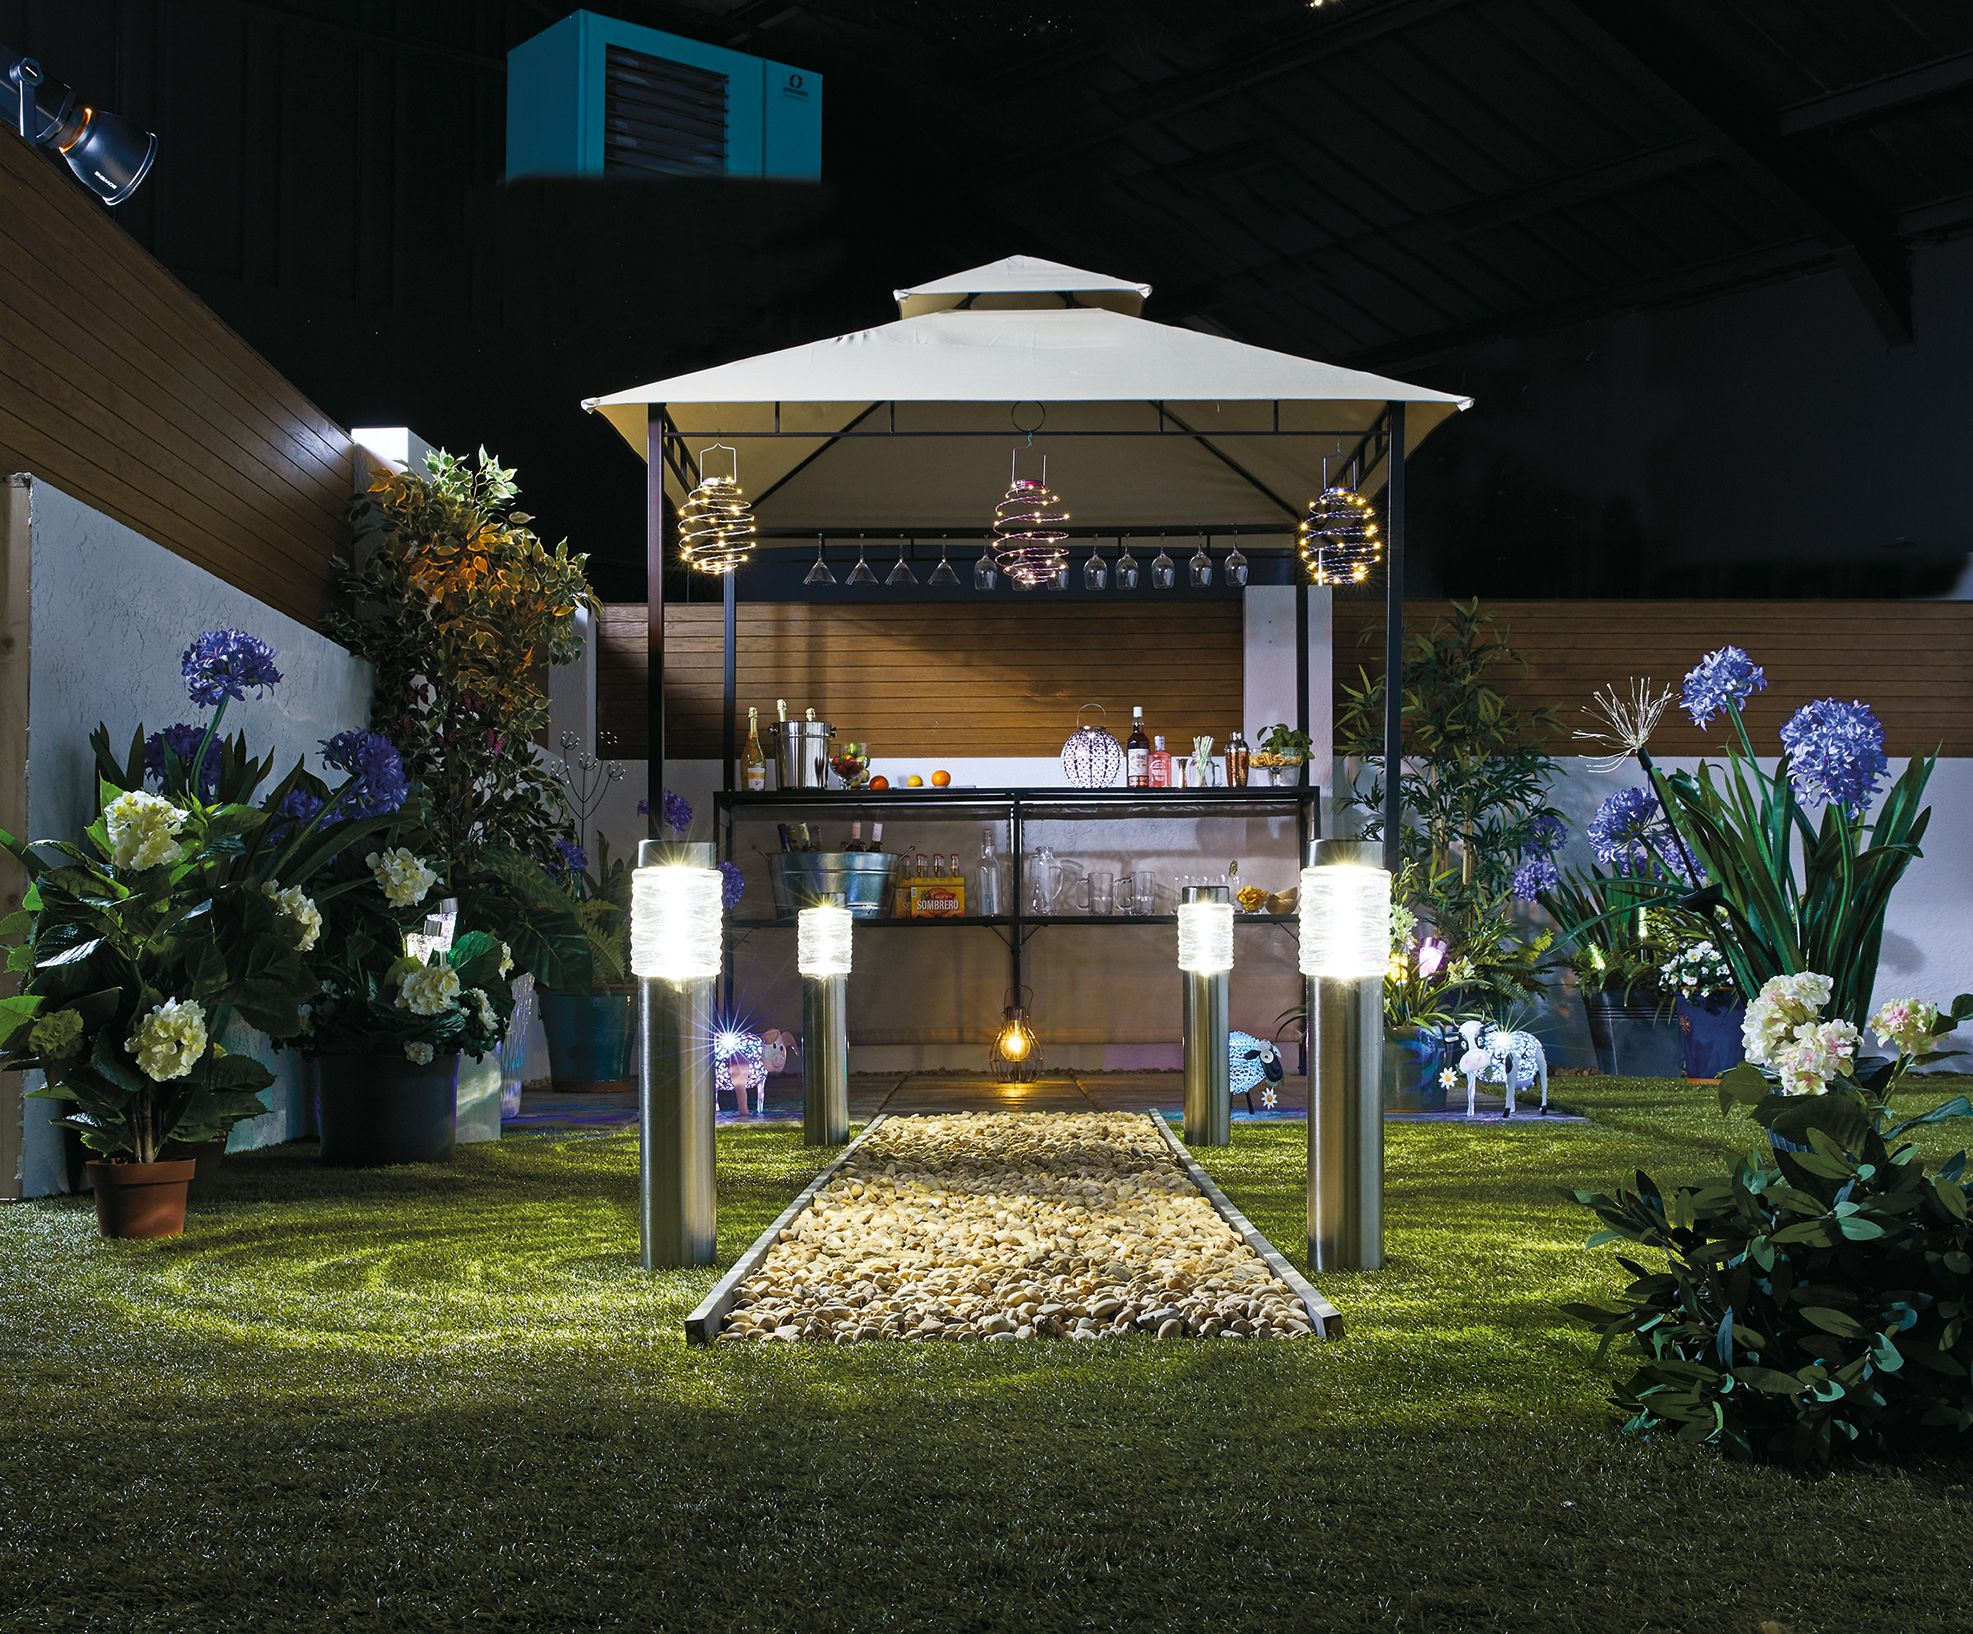 Aldi is selling a gazebo with a built-in bar for £150